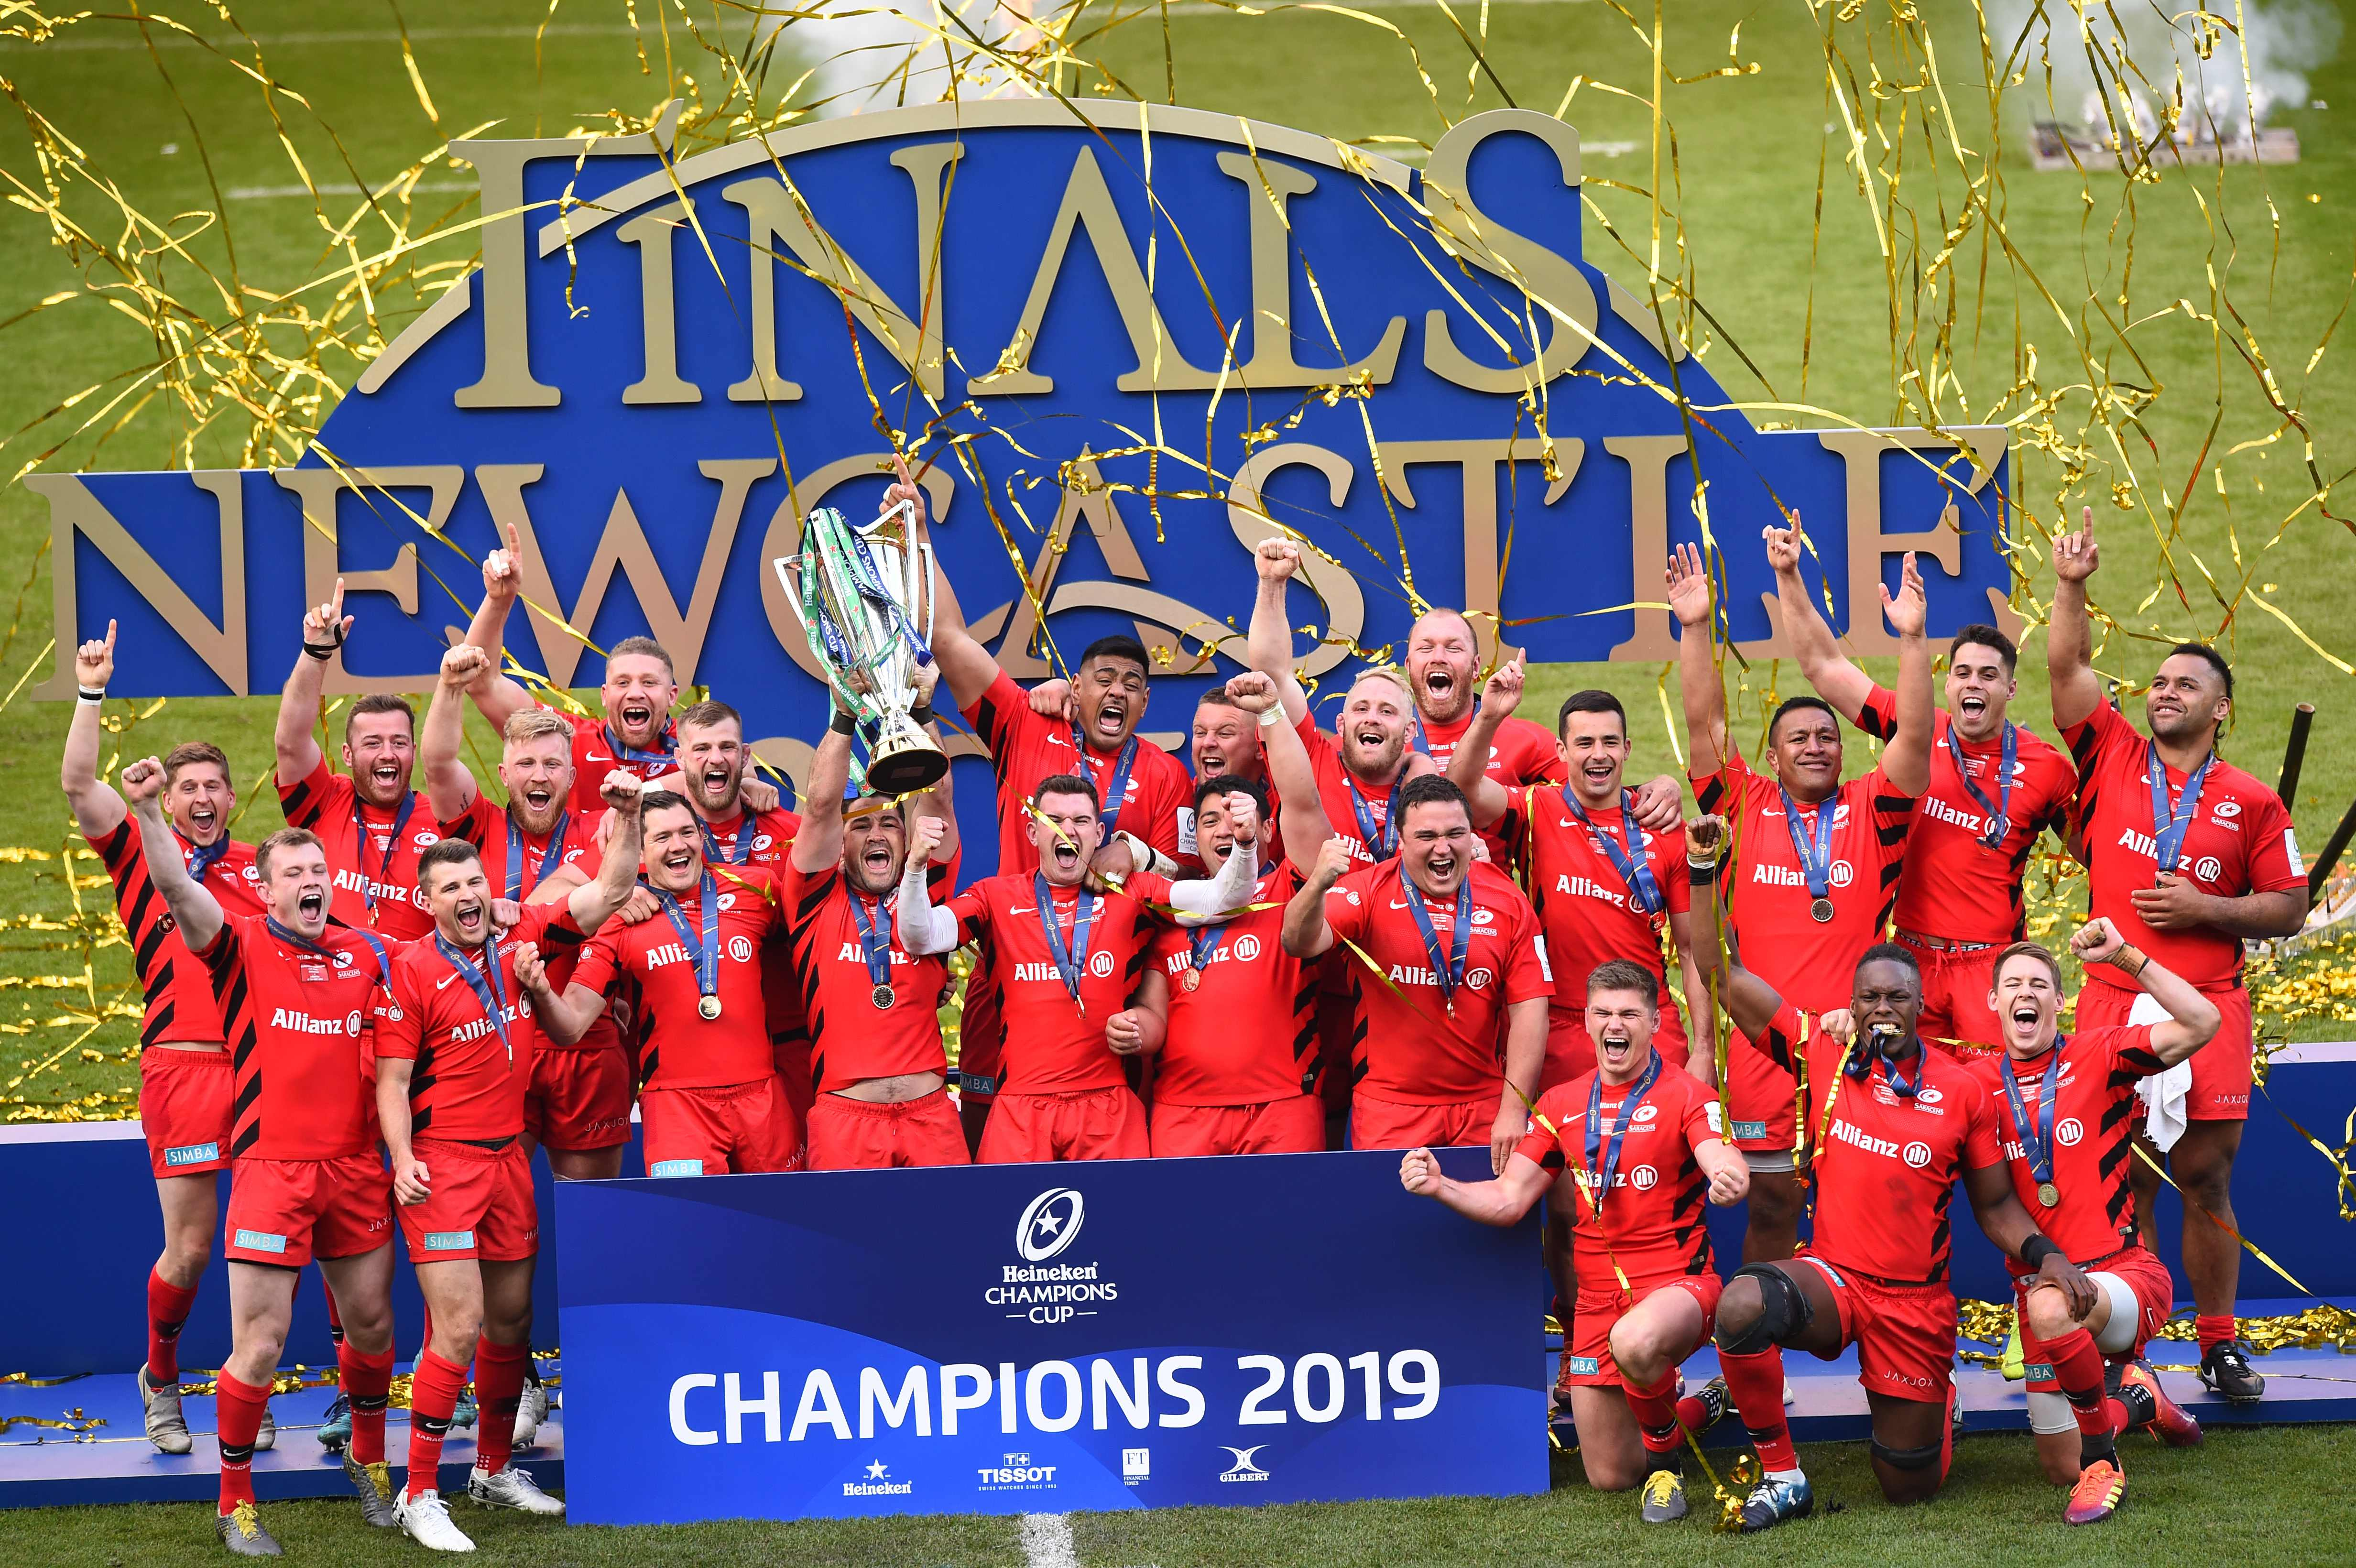 Saracens will look to seal the double in the Premiership final following their win in the European Champions Cup